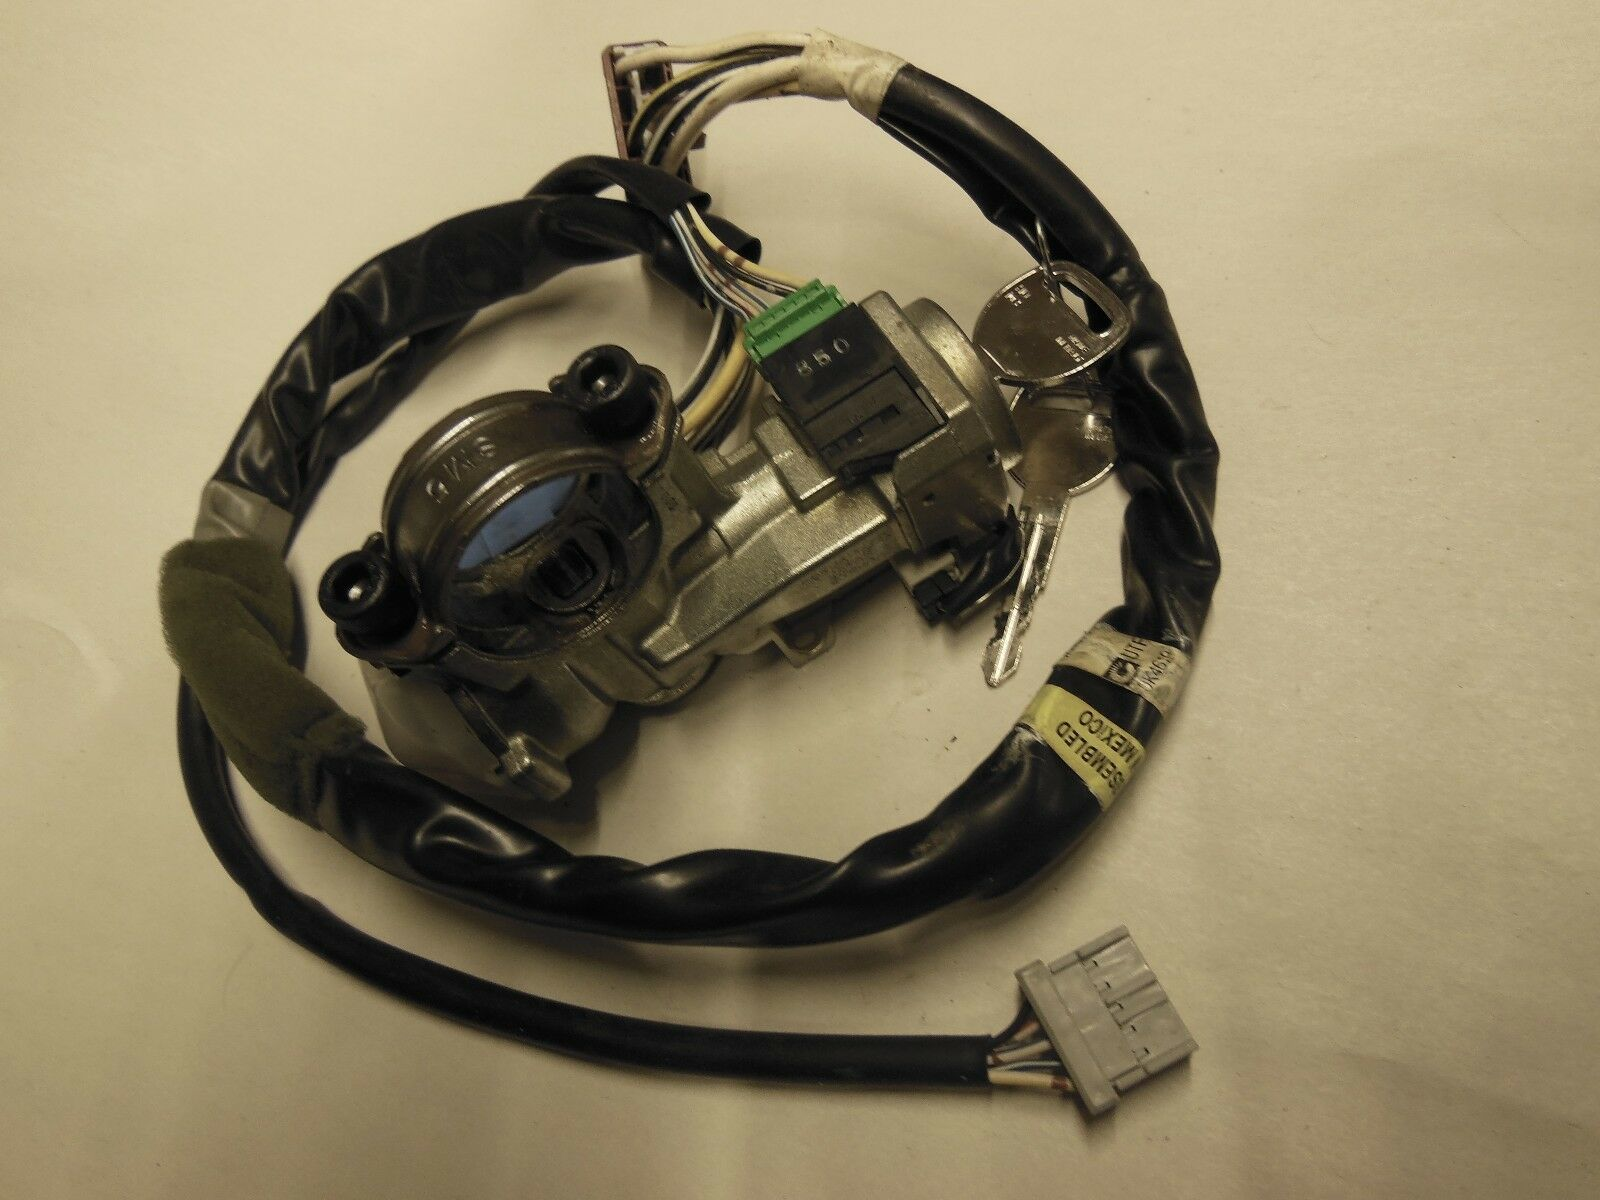 Used Acura Cl Ignition Systems For Sale 1997 Tl Seat Wiring Key Switch 2 Keys New Bolts